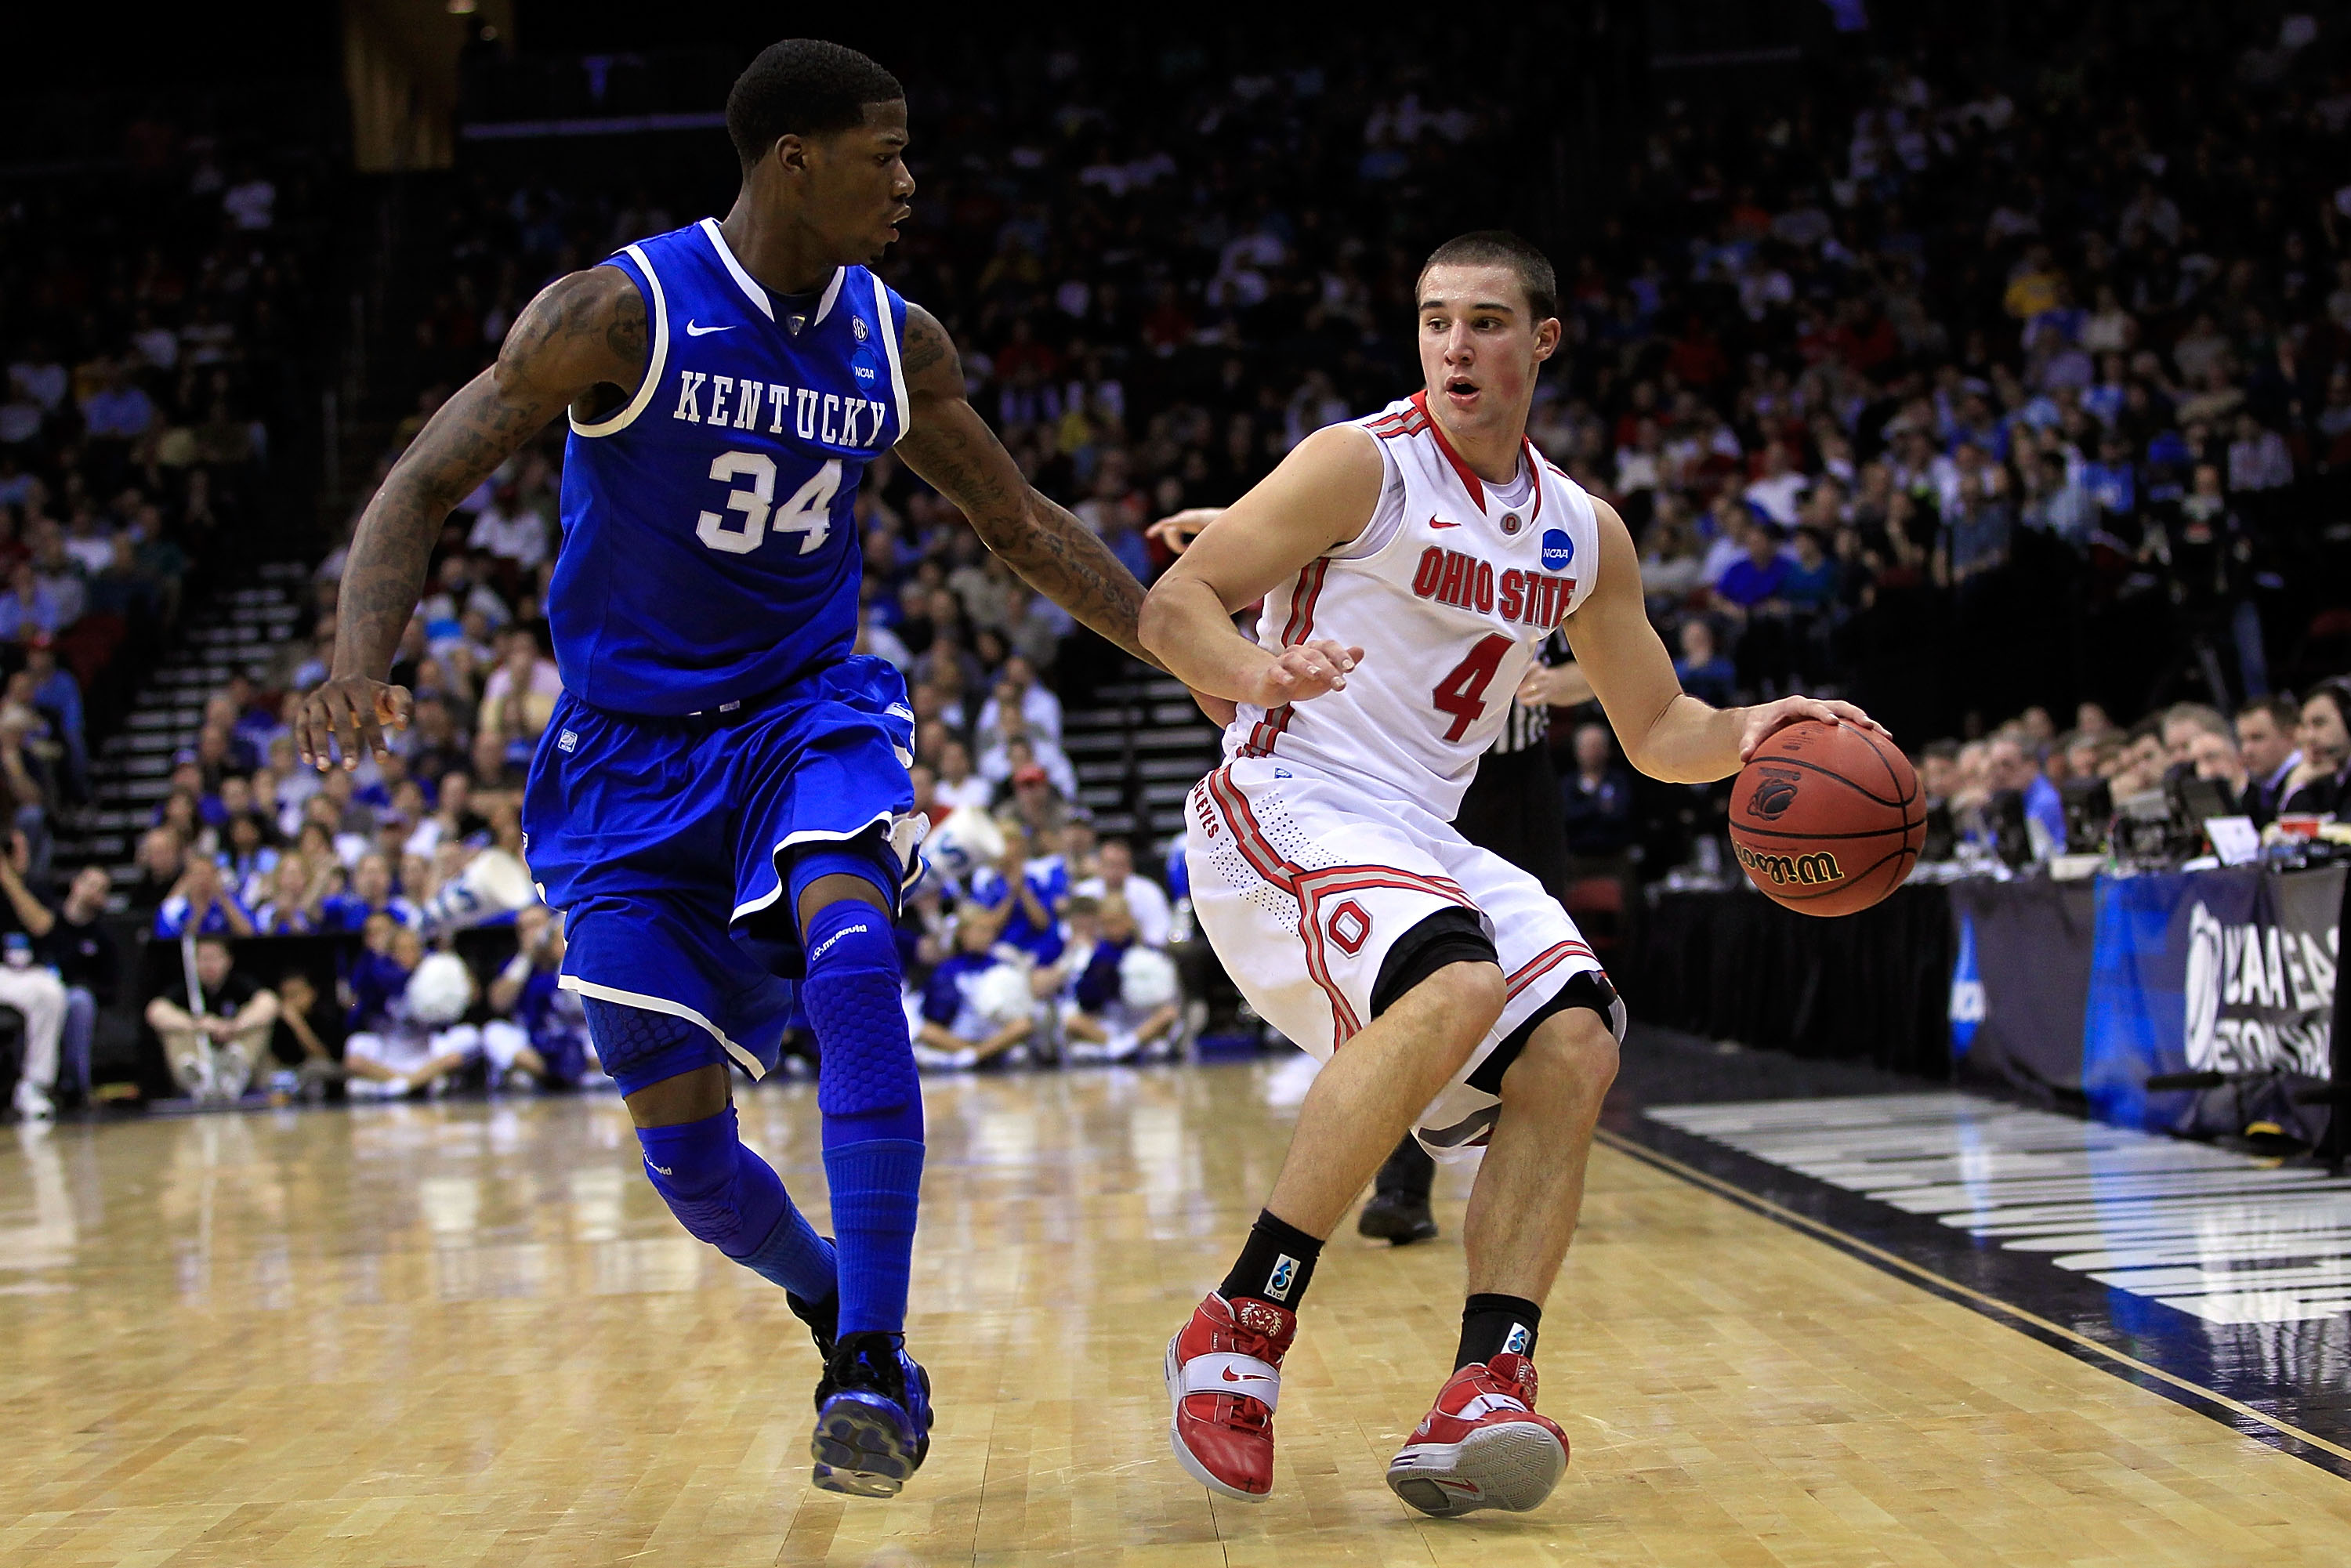 NEWARK, NJ - MARCH 25:  Aaron Craft #4 of the Ohio State Buckeyes brings the ball up court against DeAndre Liggins #34 of the Kentucky Wildcats during the east regional semifinal of the 2011 NCAA Men's Basketball Tournament at the Prudential Center on Mar